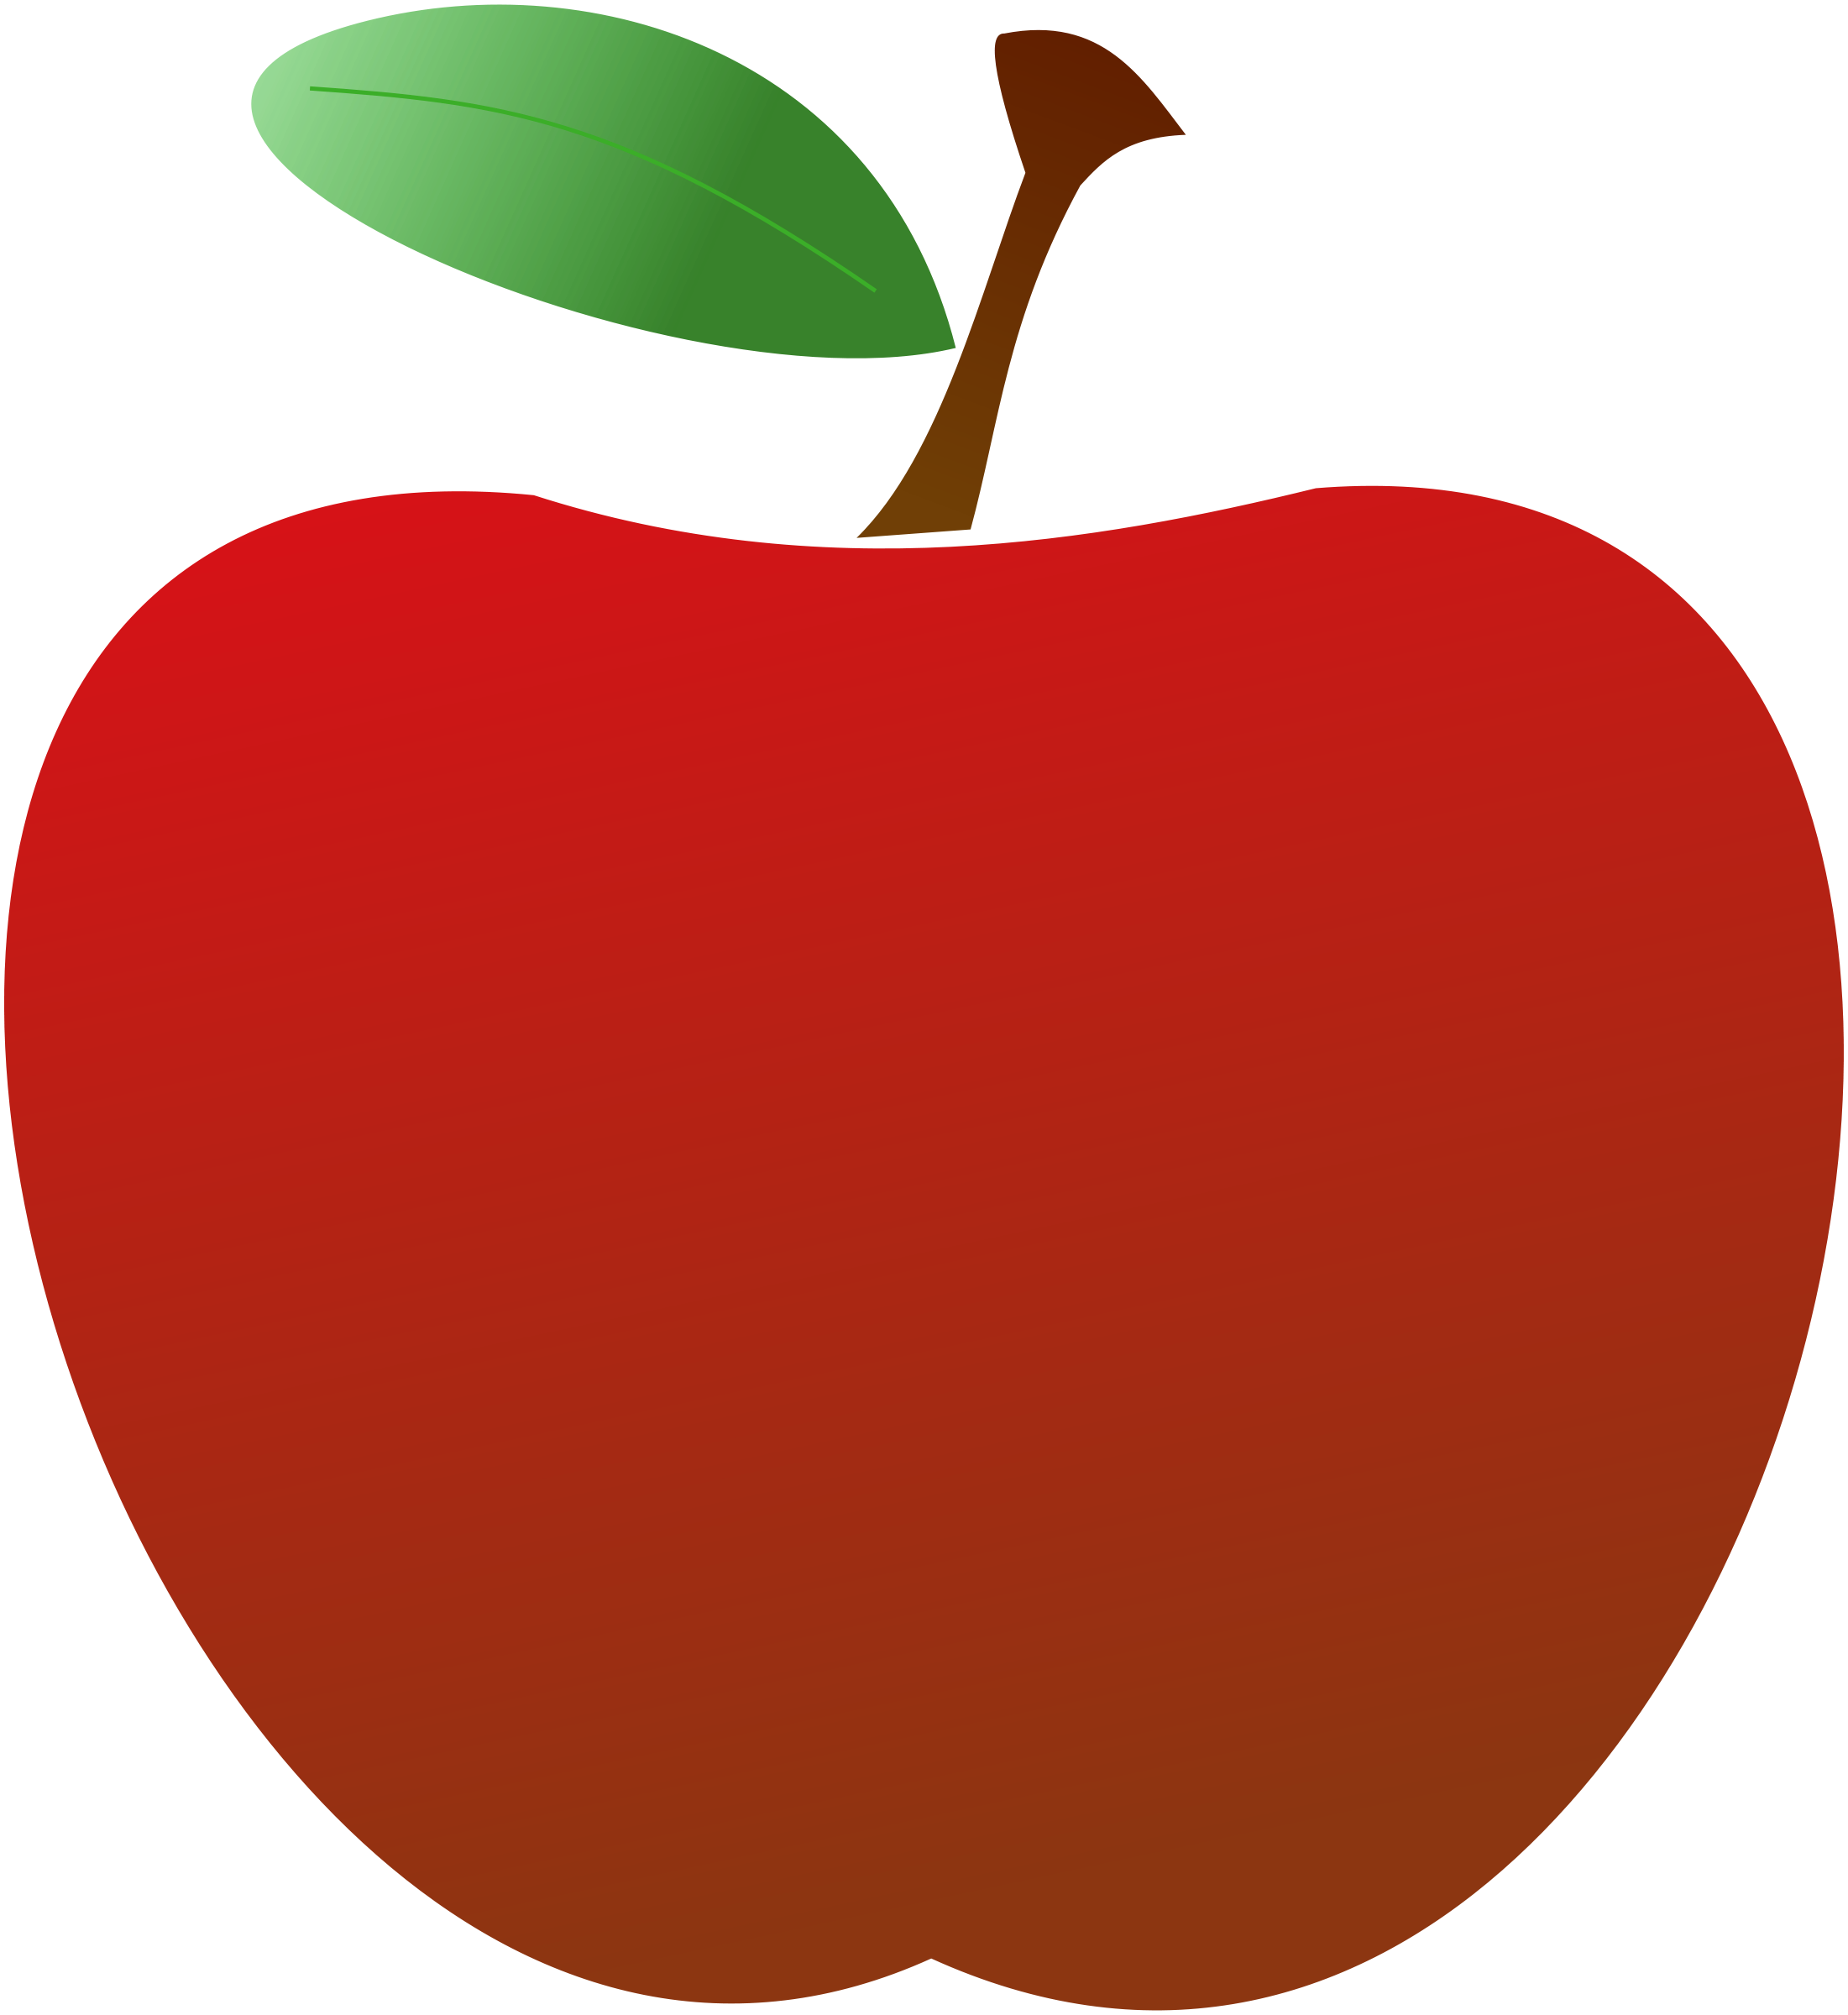 Red Apple Clipart - Cliparts.co